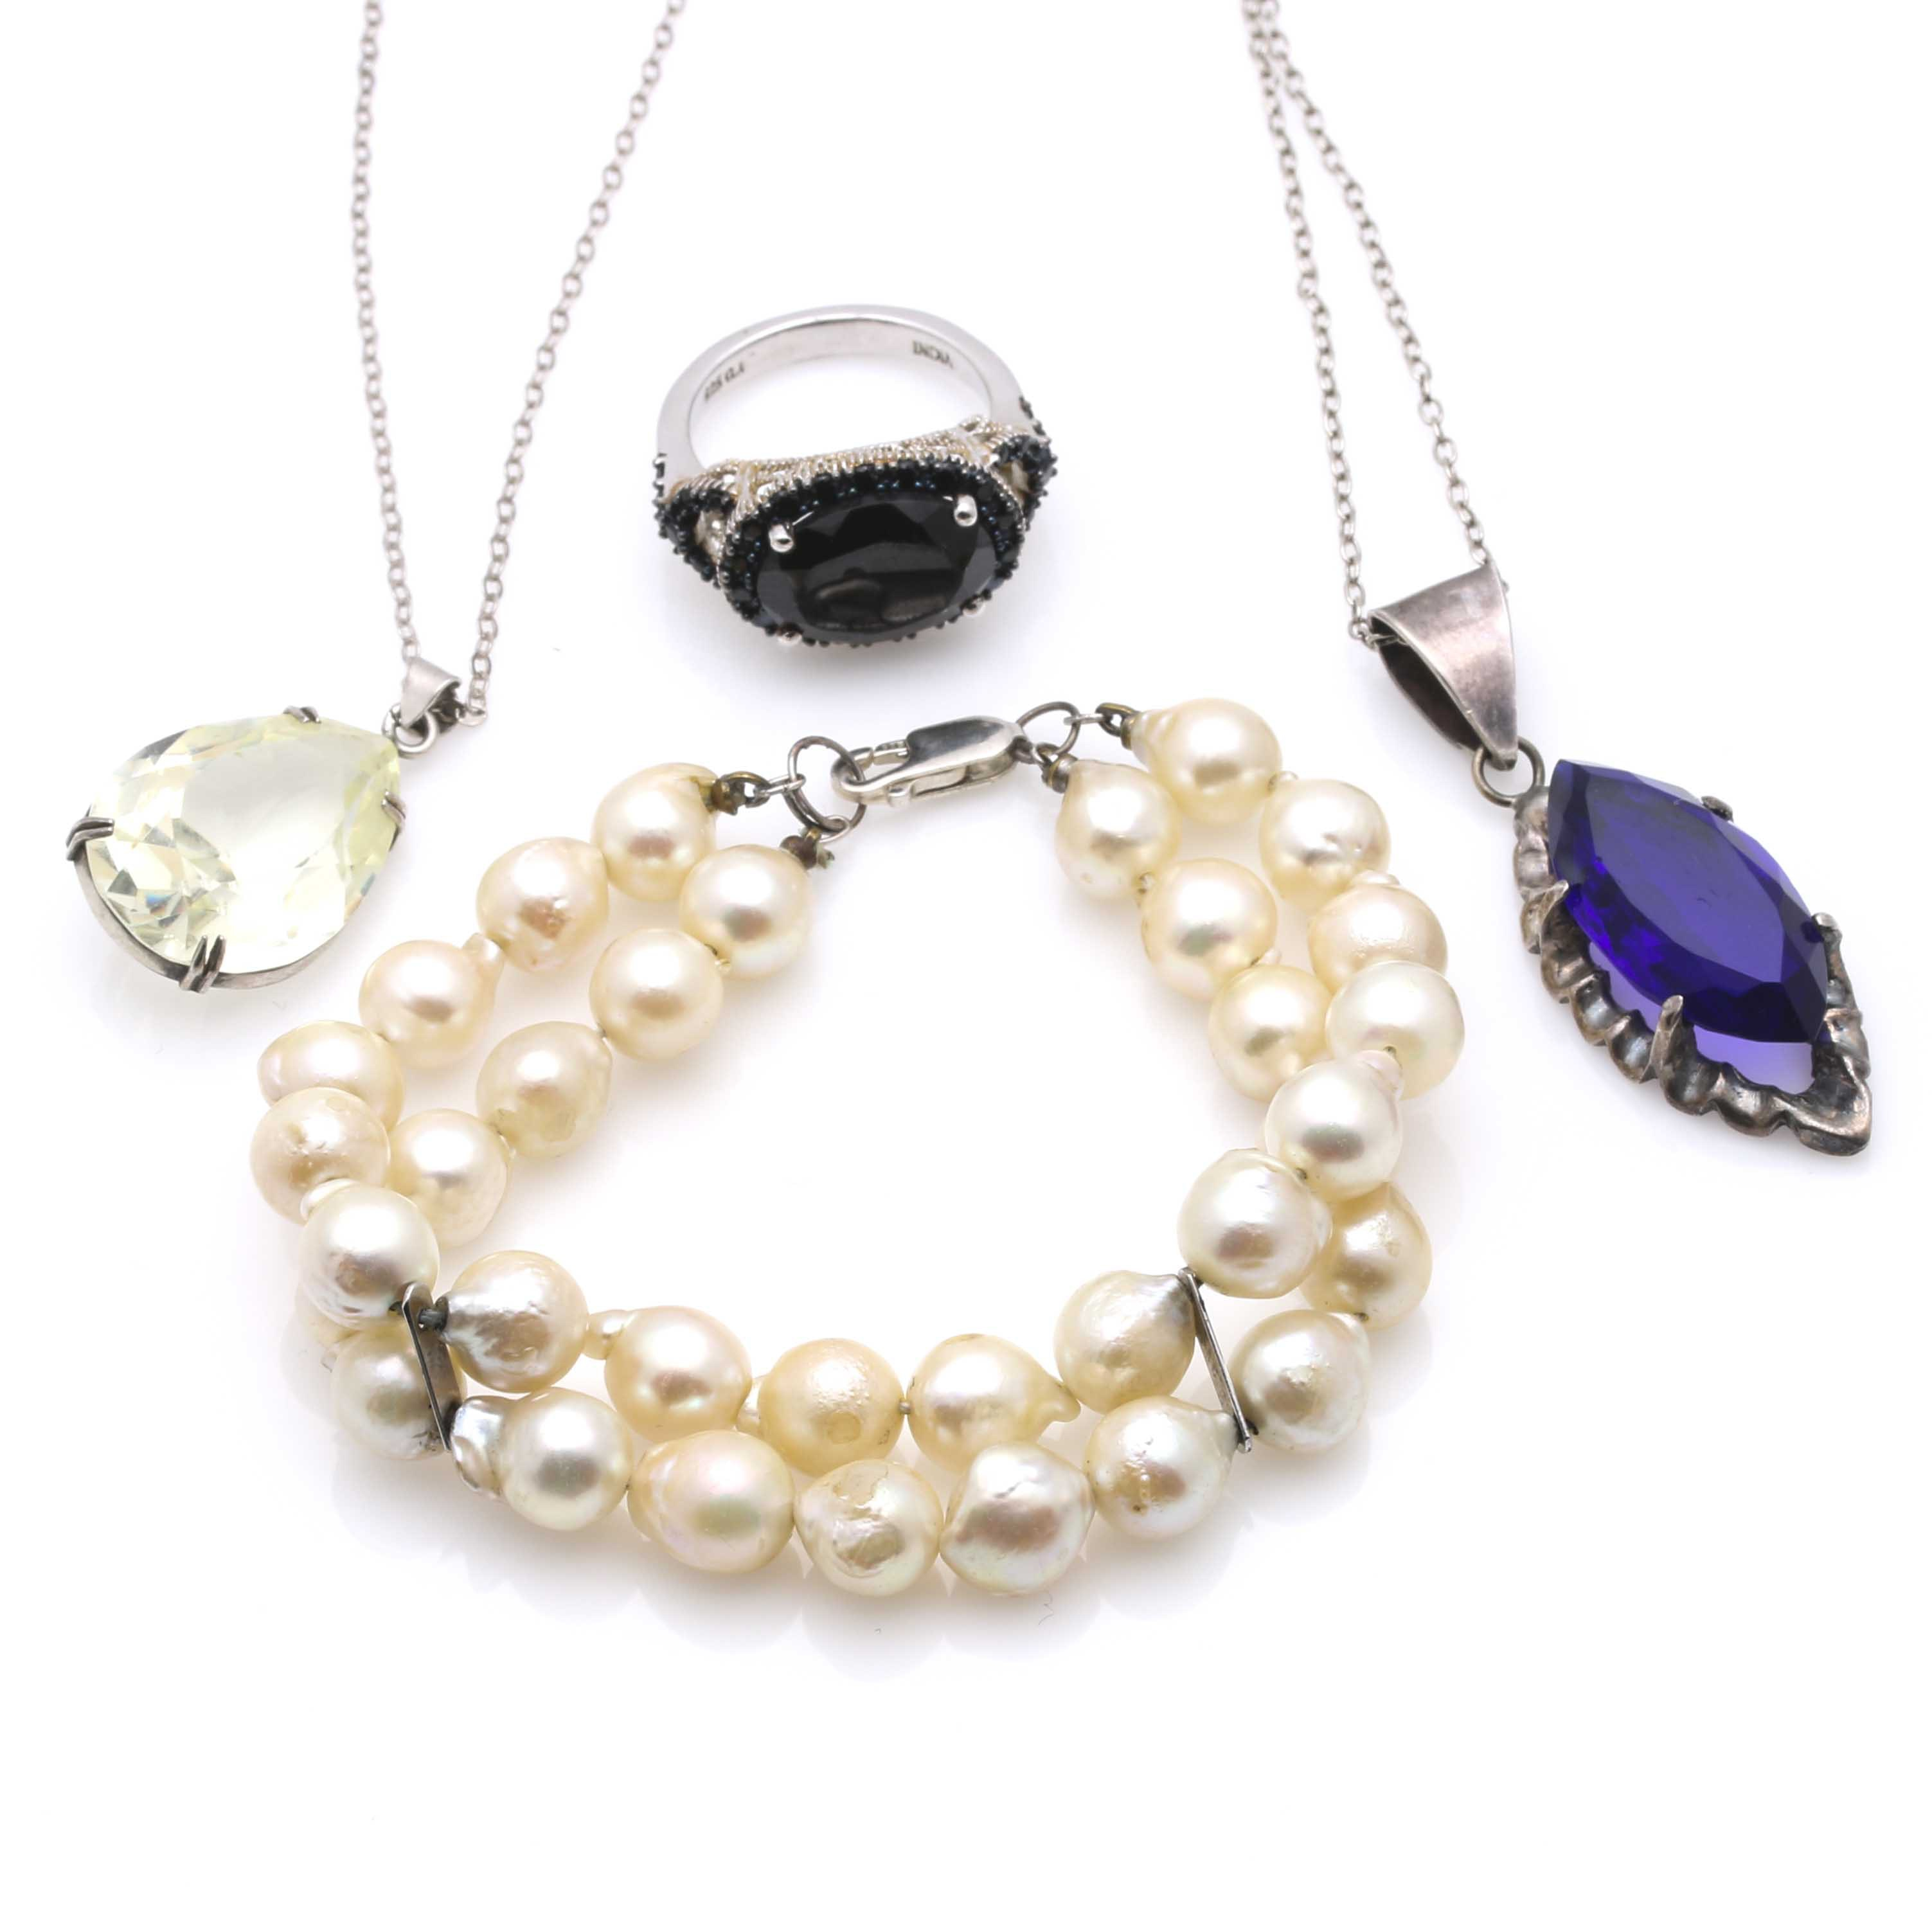 Sterling Silver  Jewelry With Gemstones and Pearls